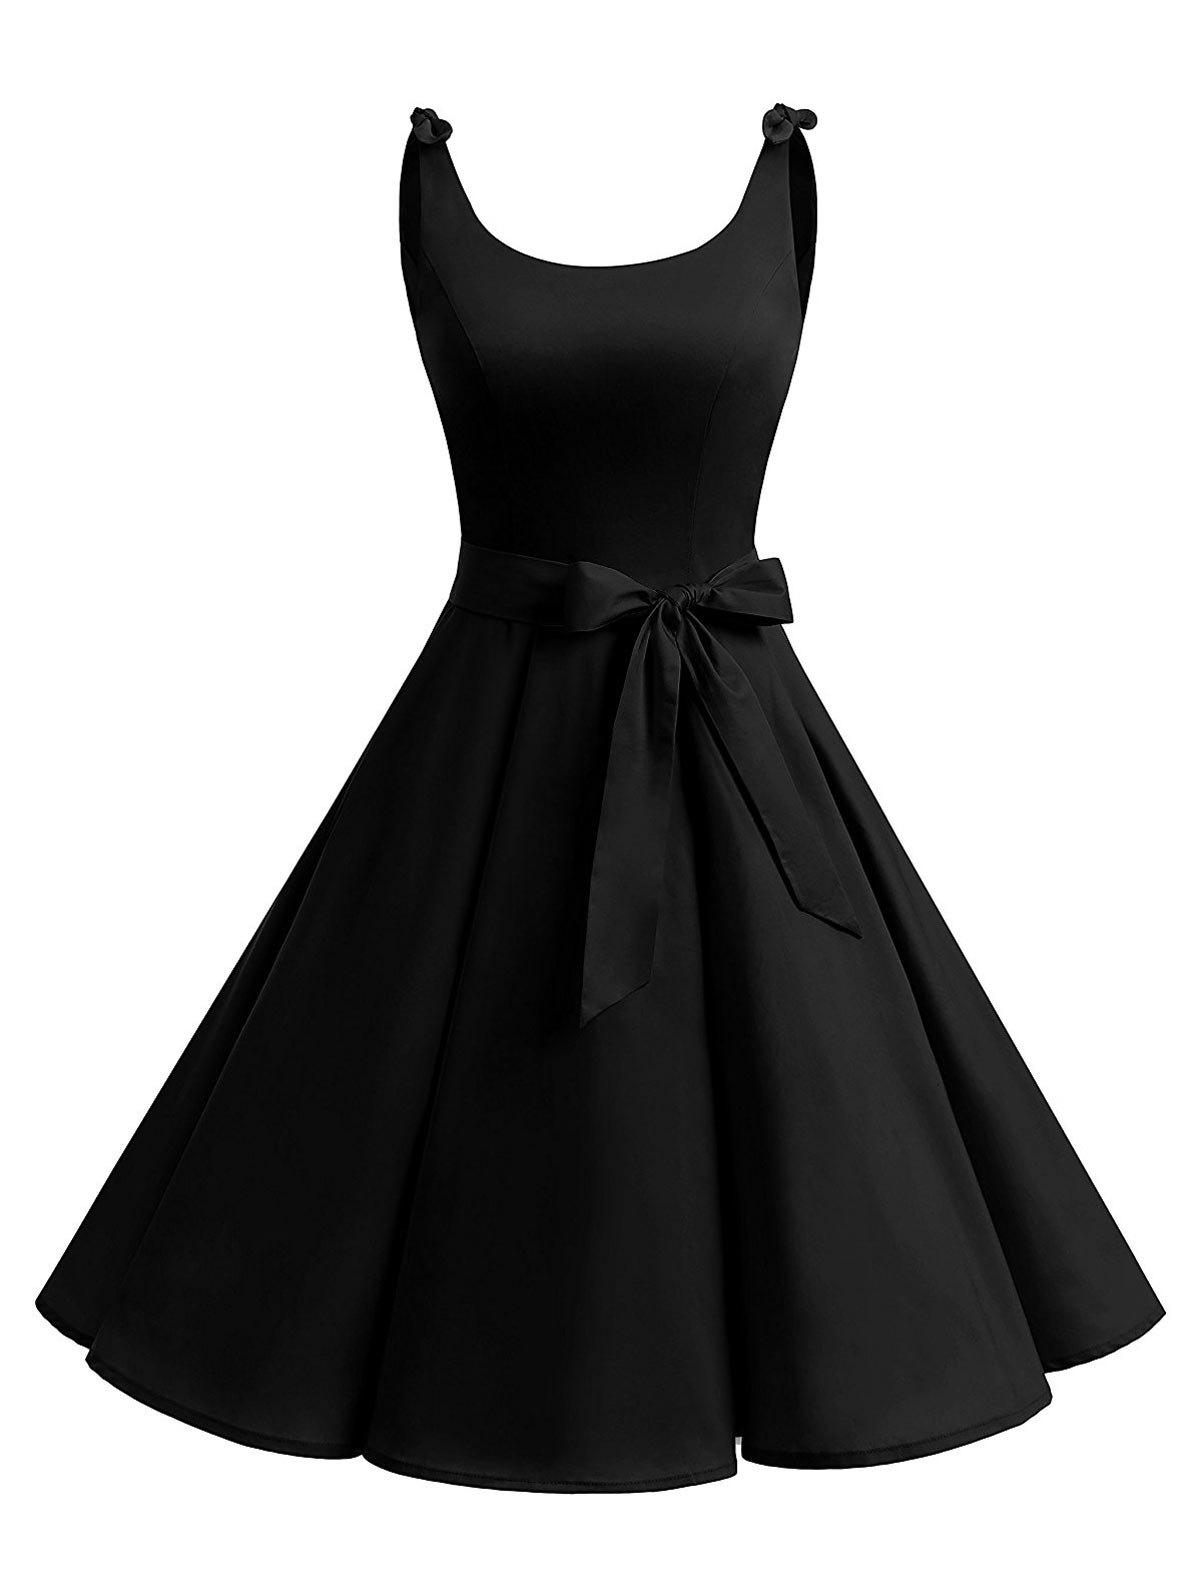 Vintage Cut Out Bowknot Party Skater Dress - Noir S